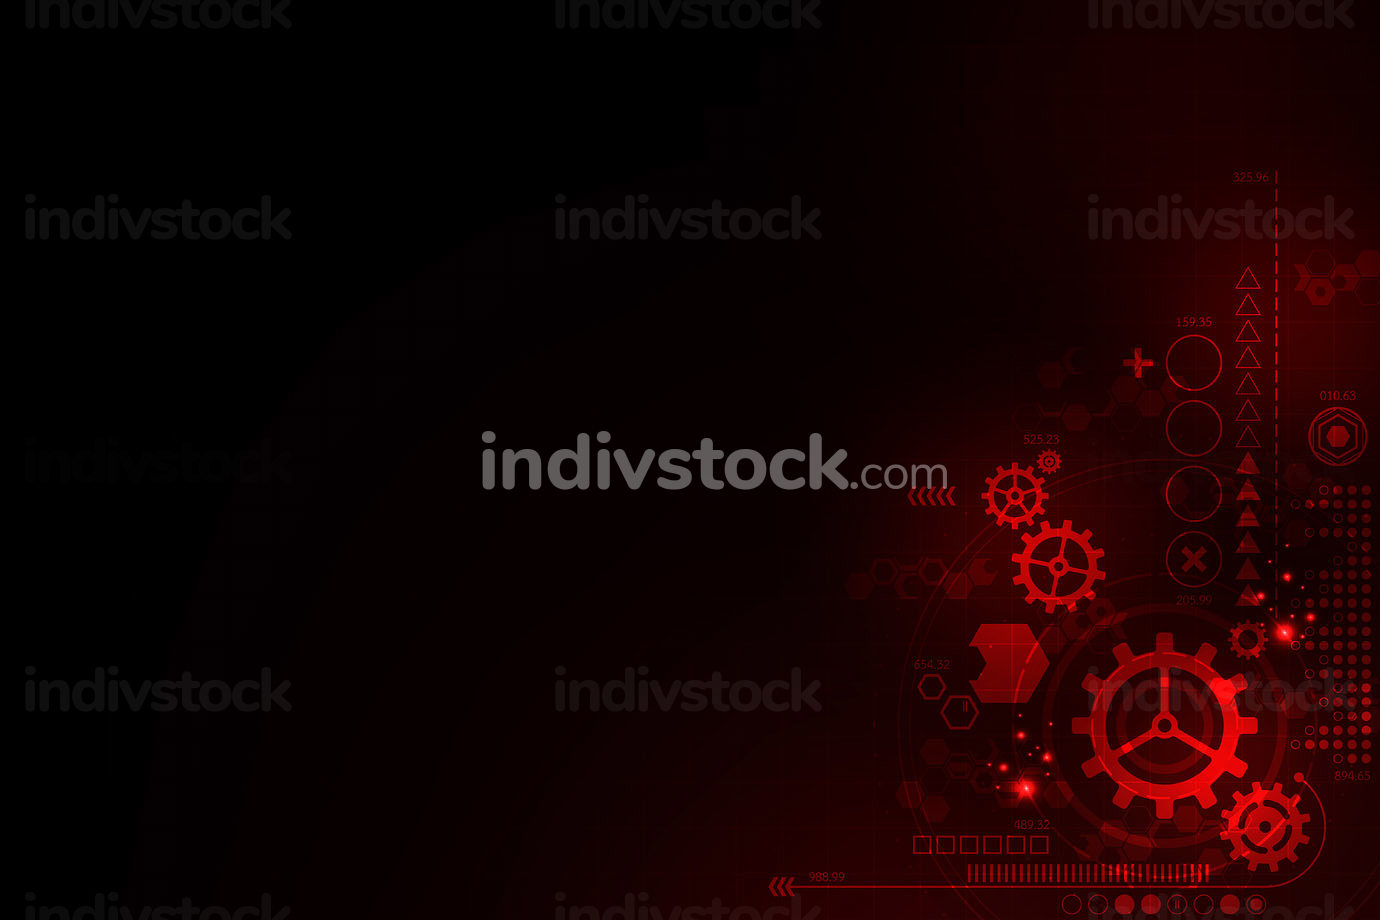 Background designed with the concept of technology.